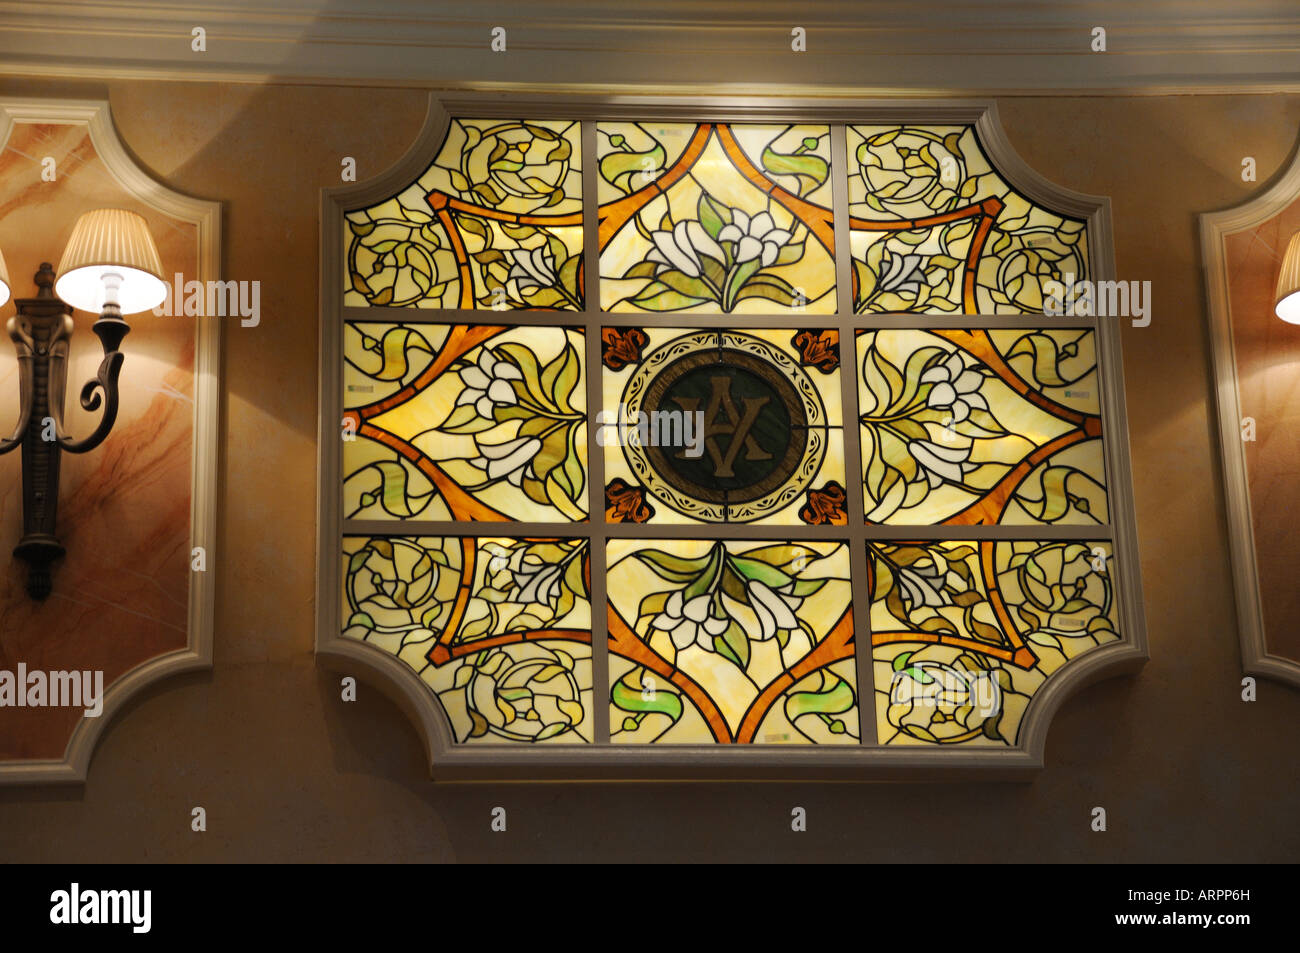 The Queens Room on Cunard's cruise ship, Queen Victoria, is decorated with stained glass panels. - Stock Image